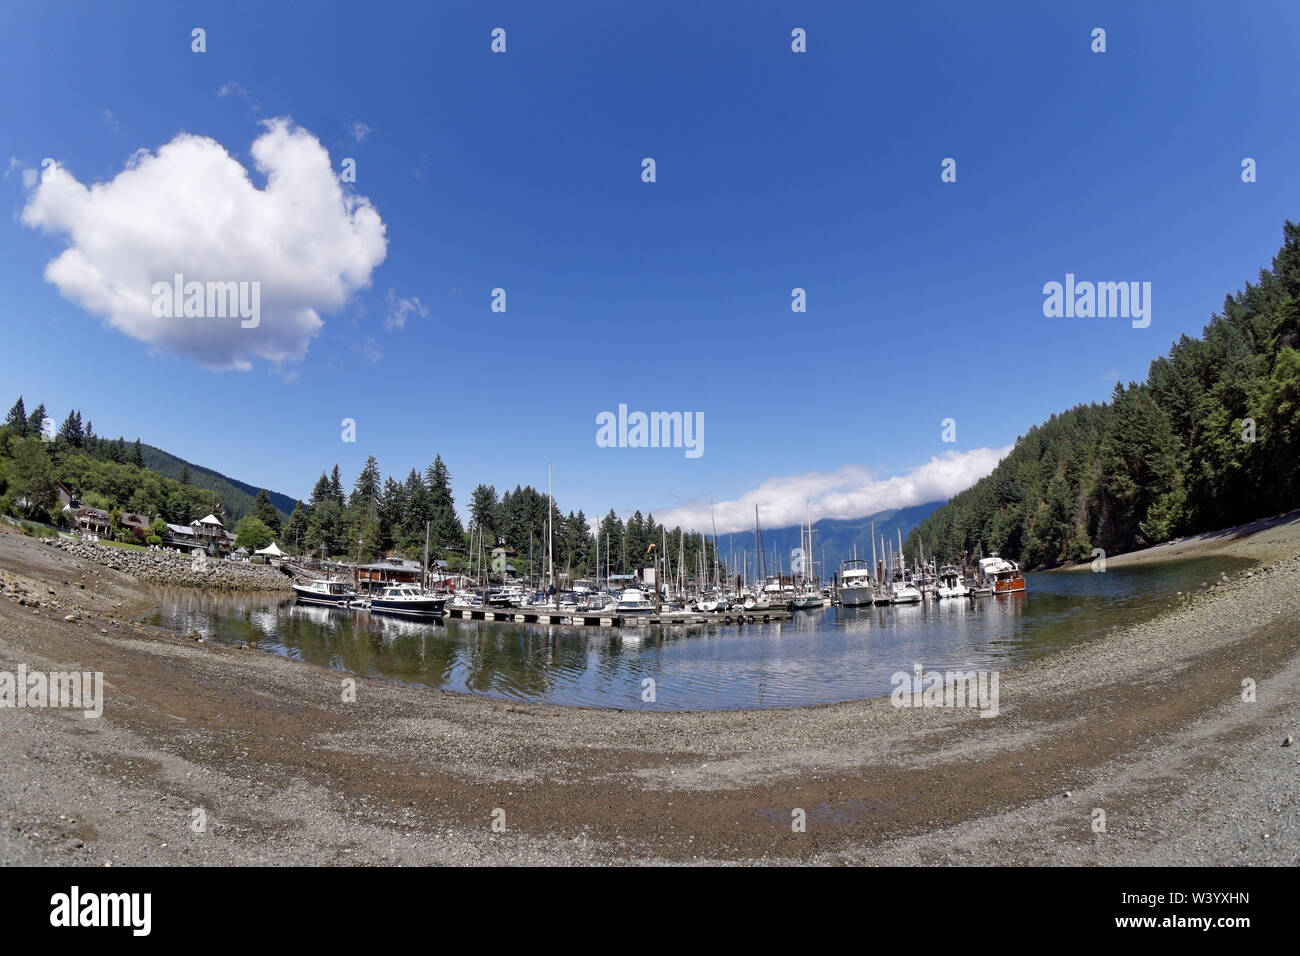 fisheye-view-of-pleasure-boats-docked-at